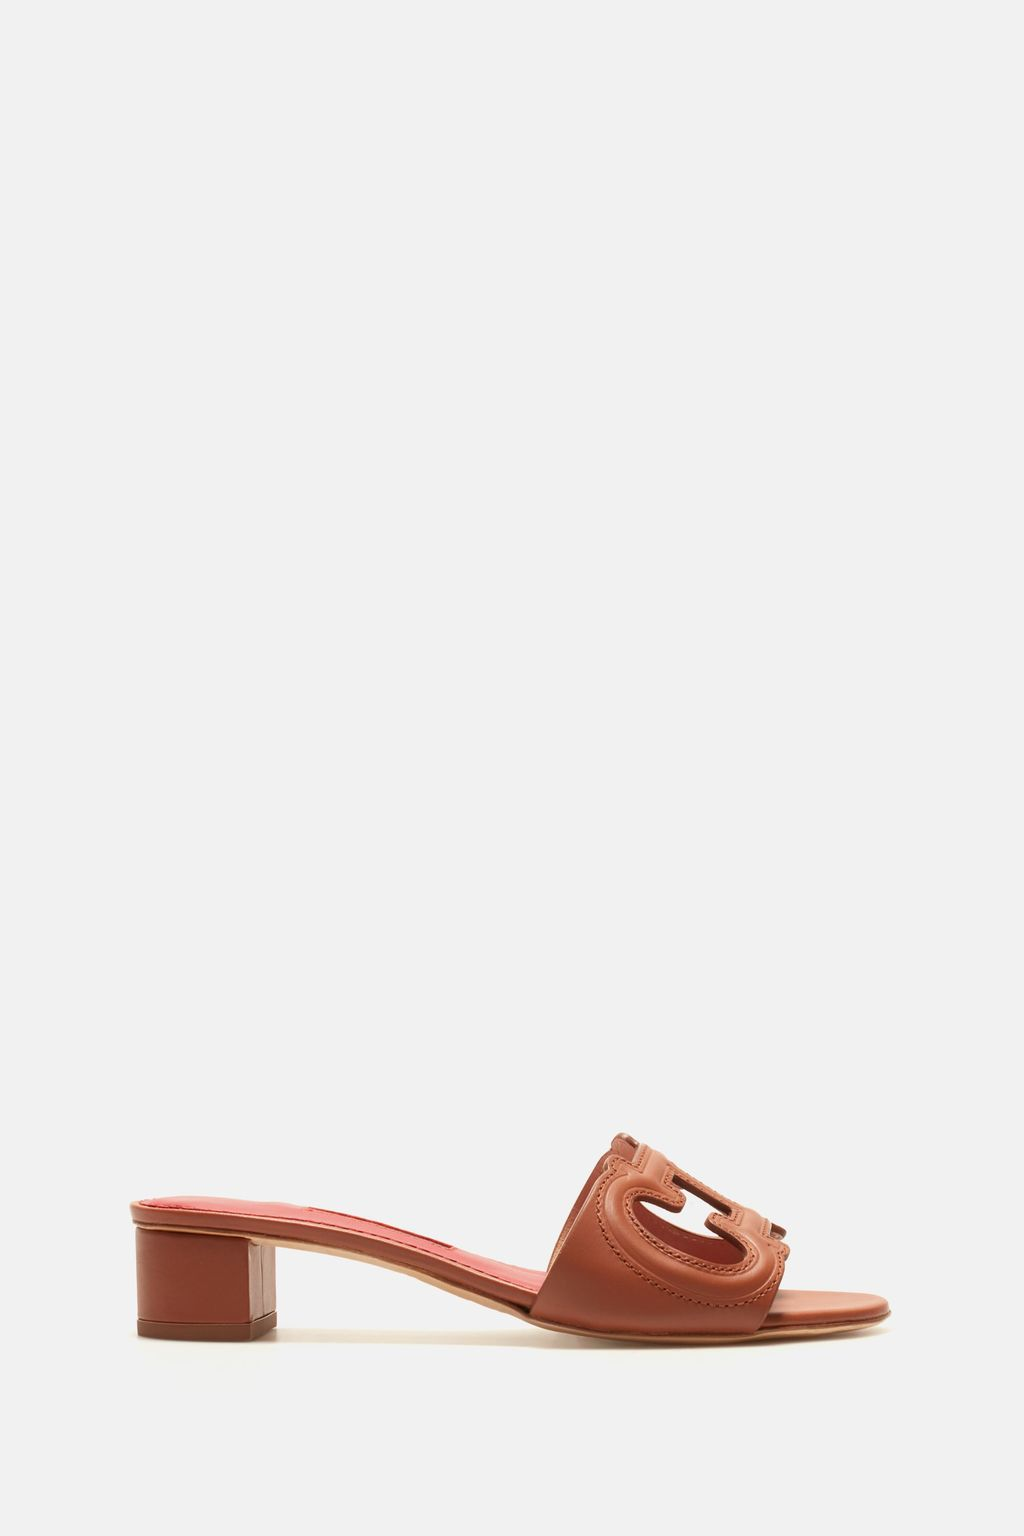 Initials Insignia cutout Napa leather sandals